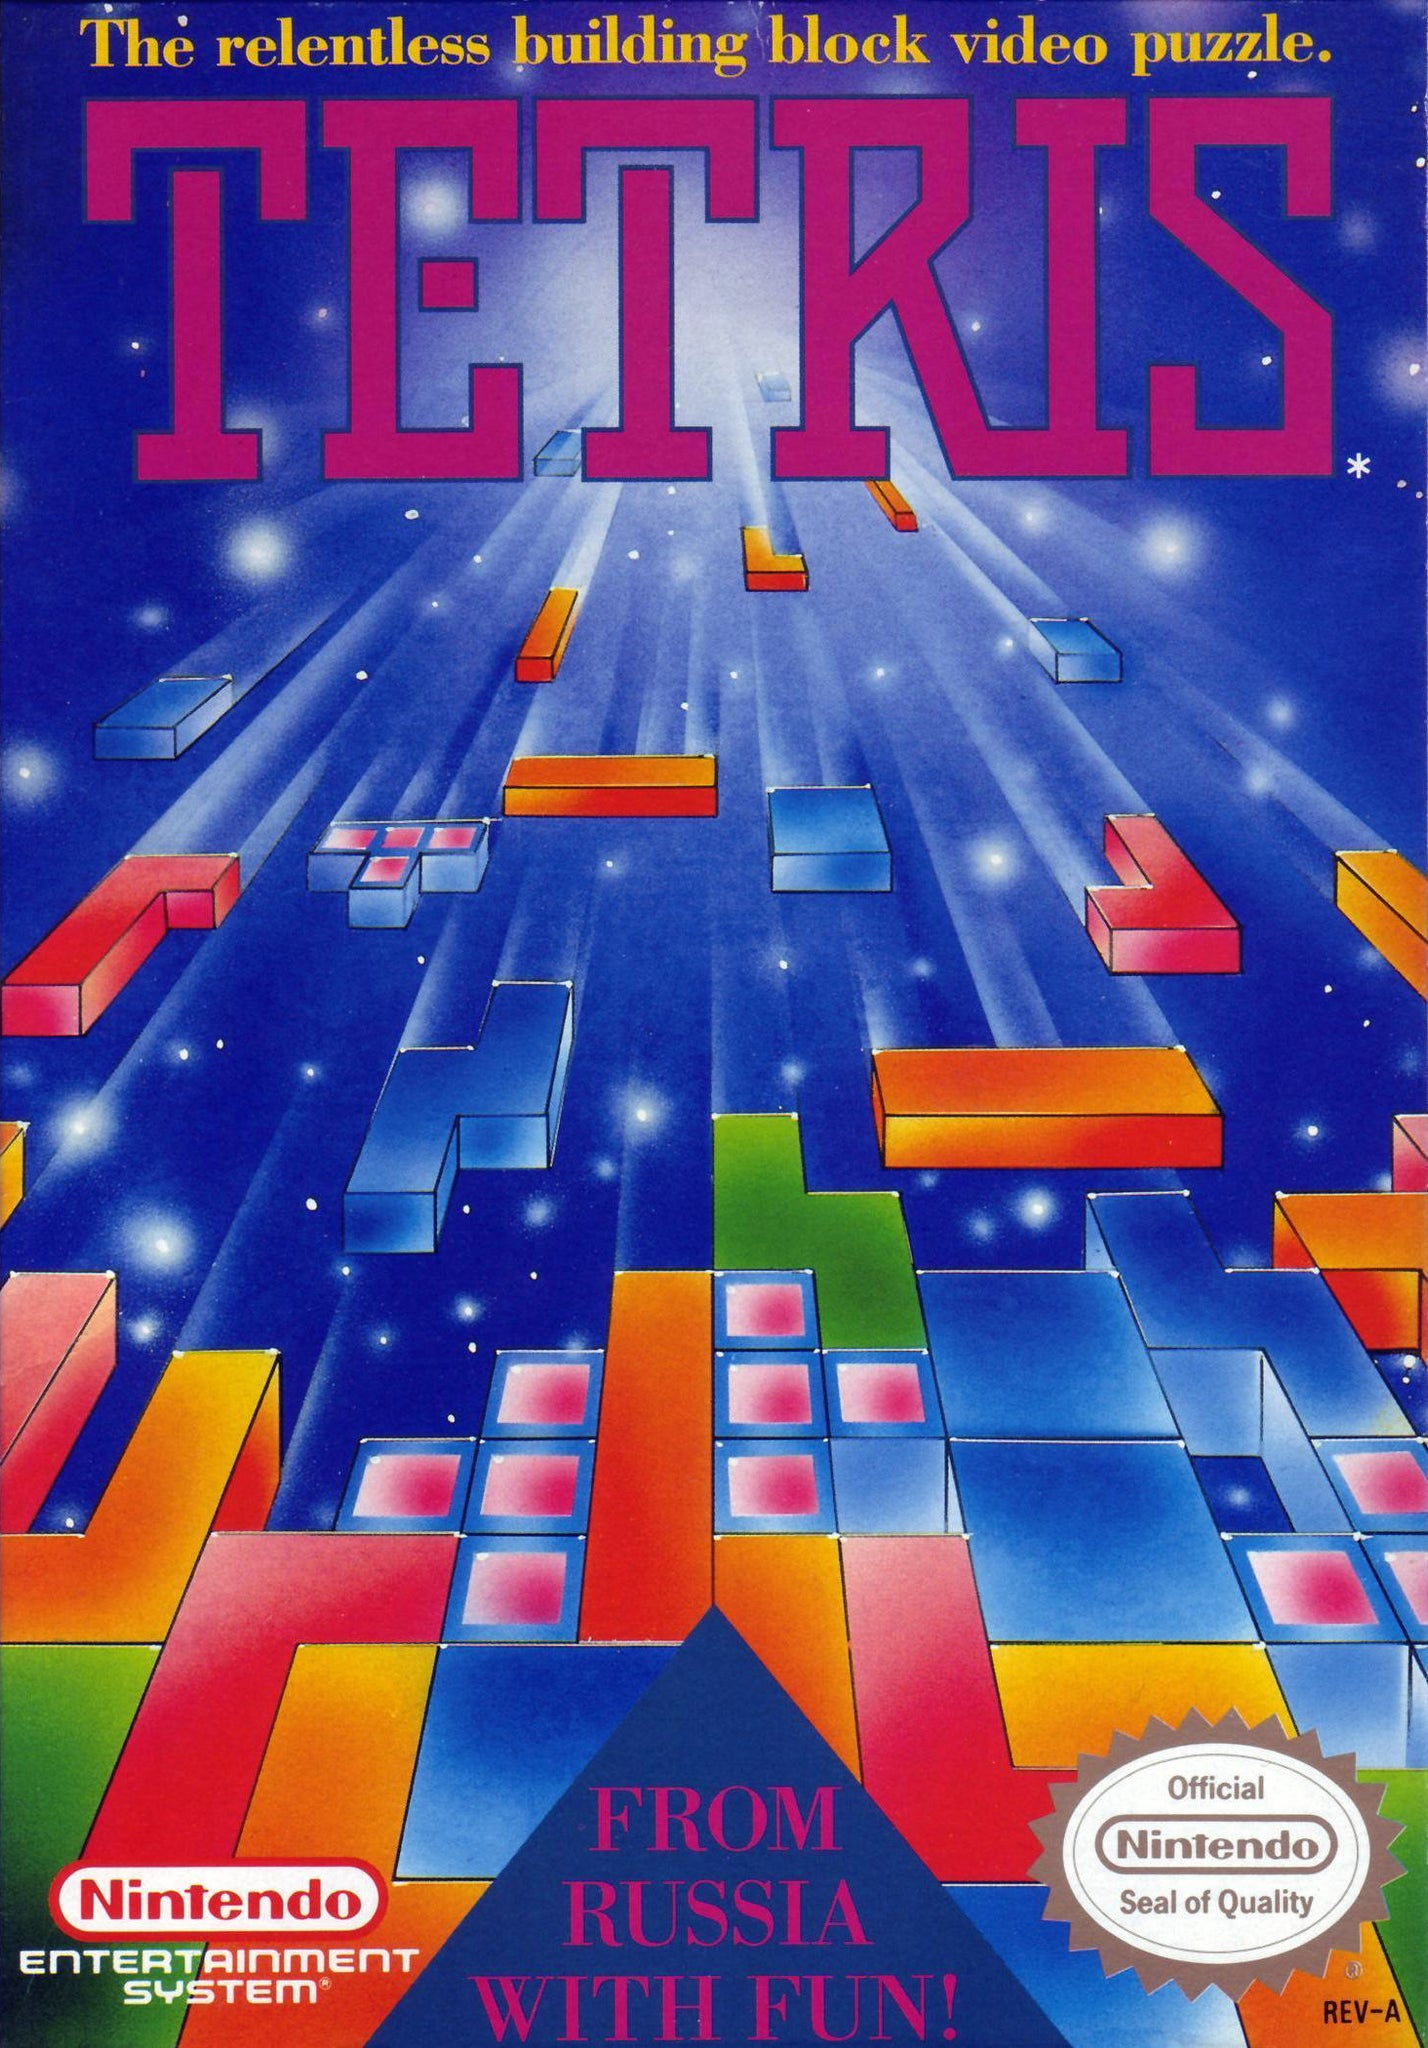 Your Gaming Shop - Tetris - Authentic NES Game Cartridge